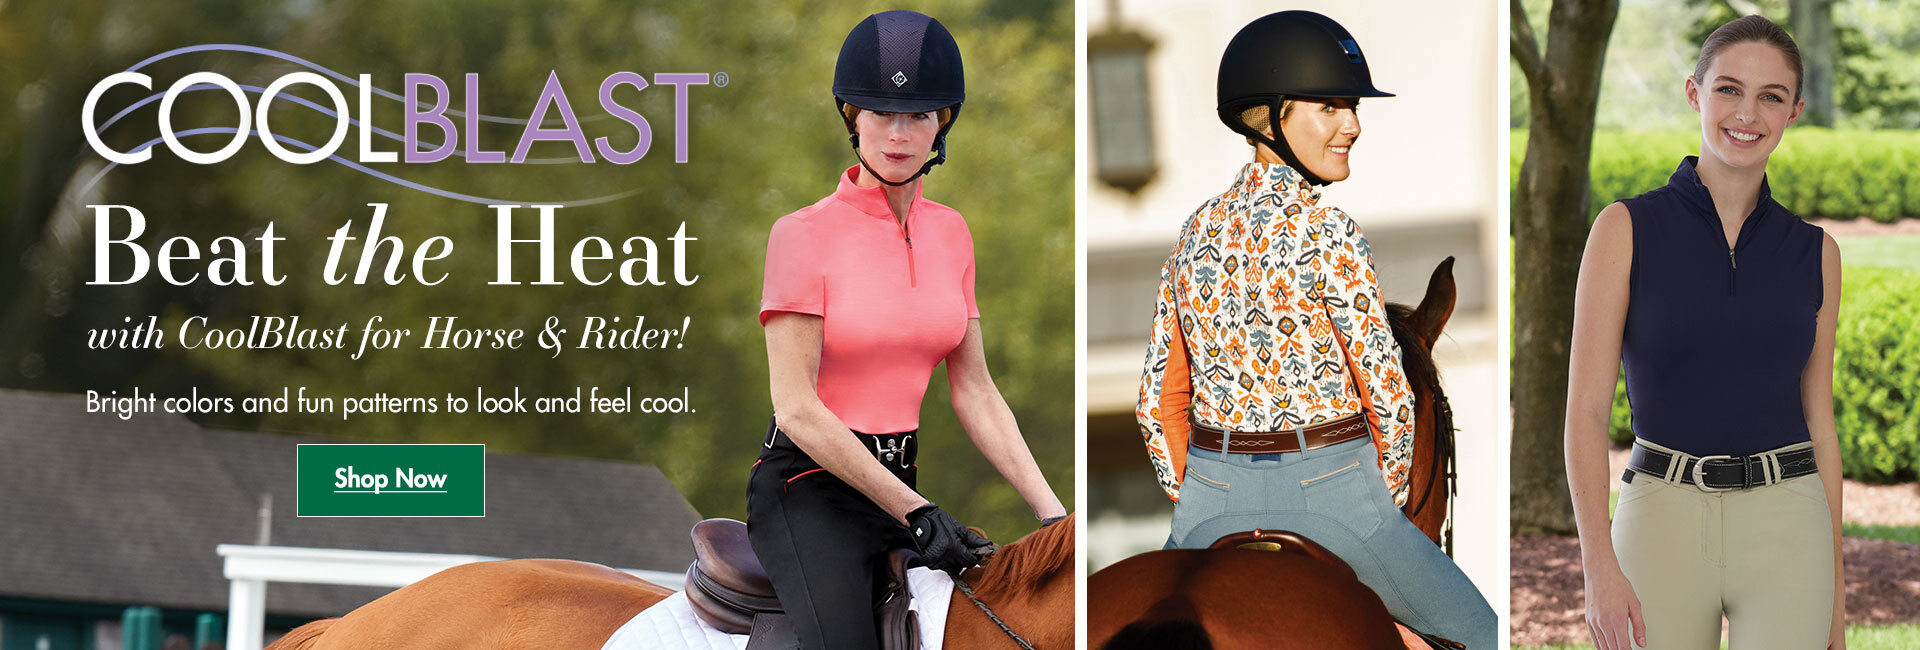 Beat the Heat with Coolblast for Horse & Rider!